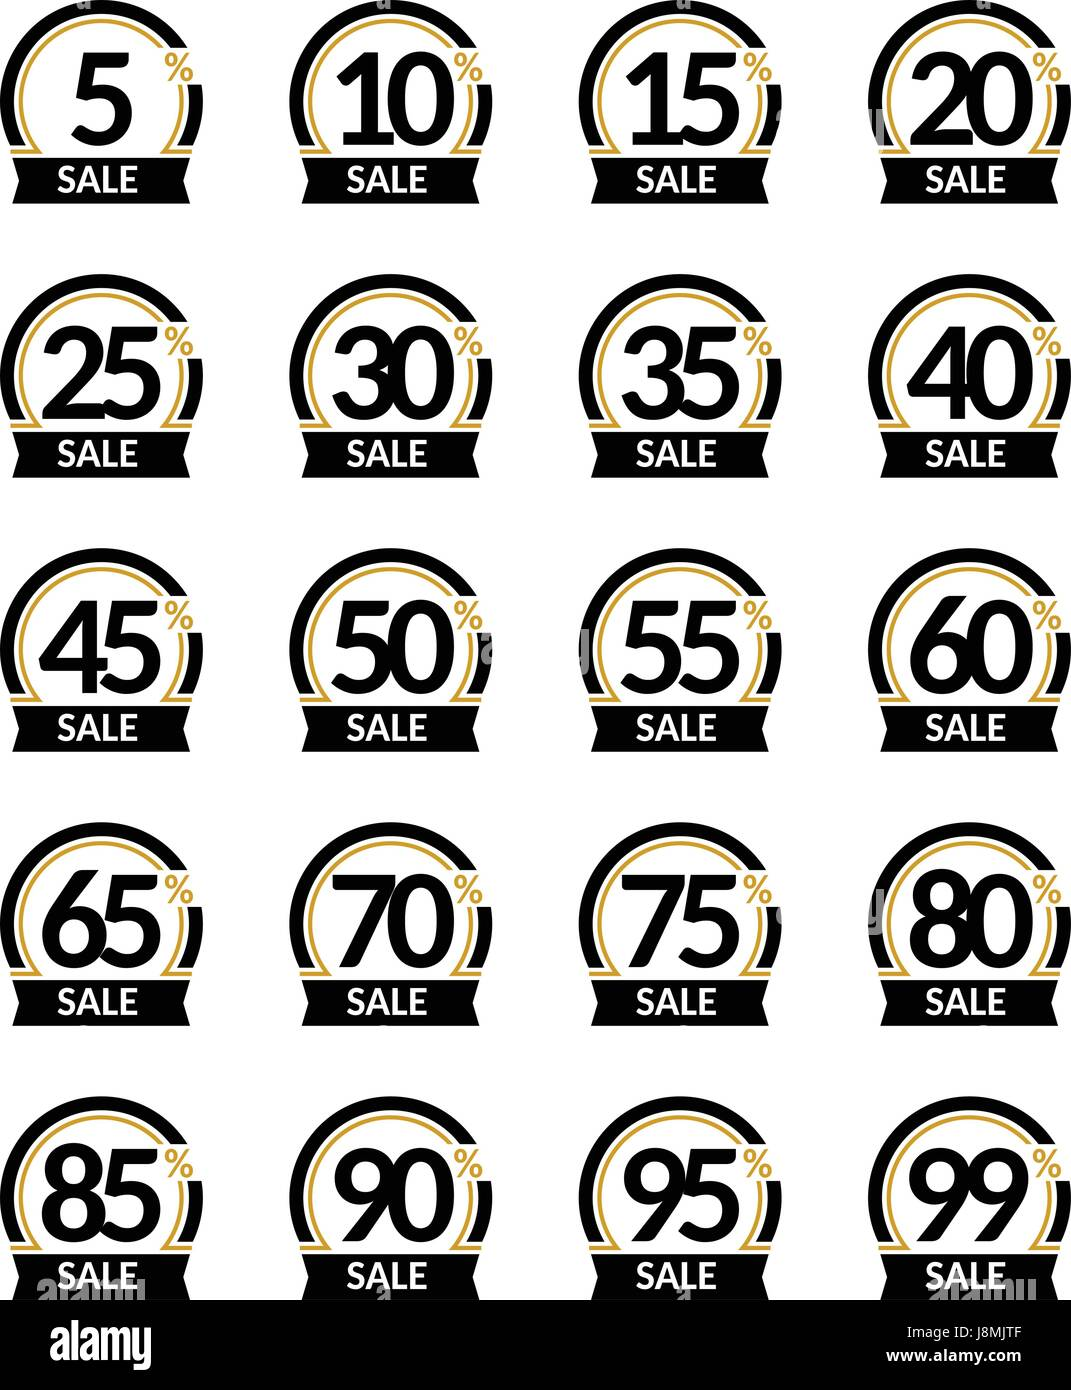 Advertising Sale and discount in percent vector sign set. Promotion Stylish logo design under the black and gold - Stock Vector